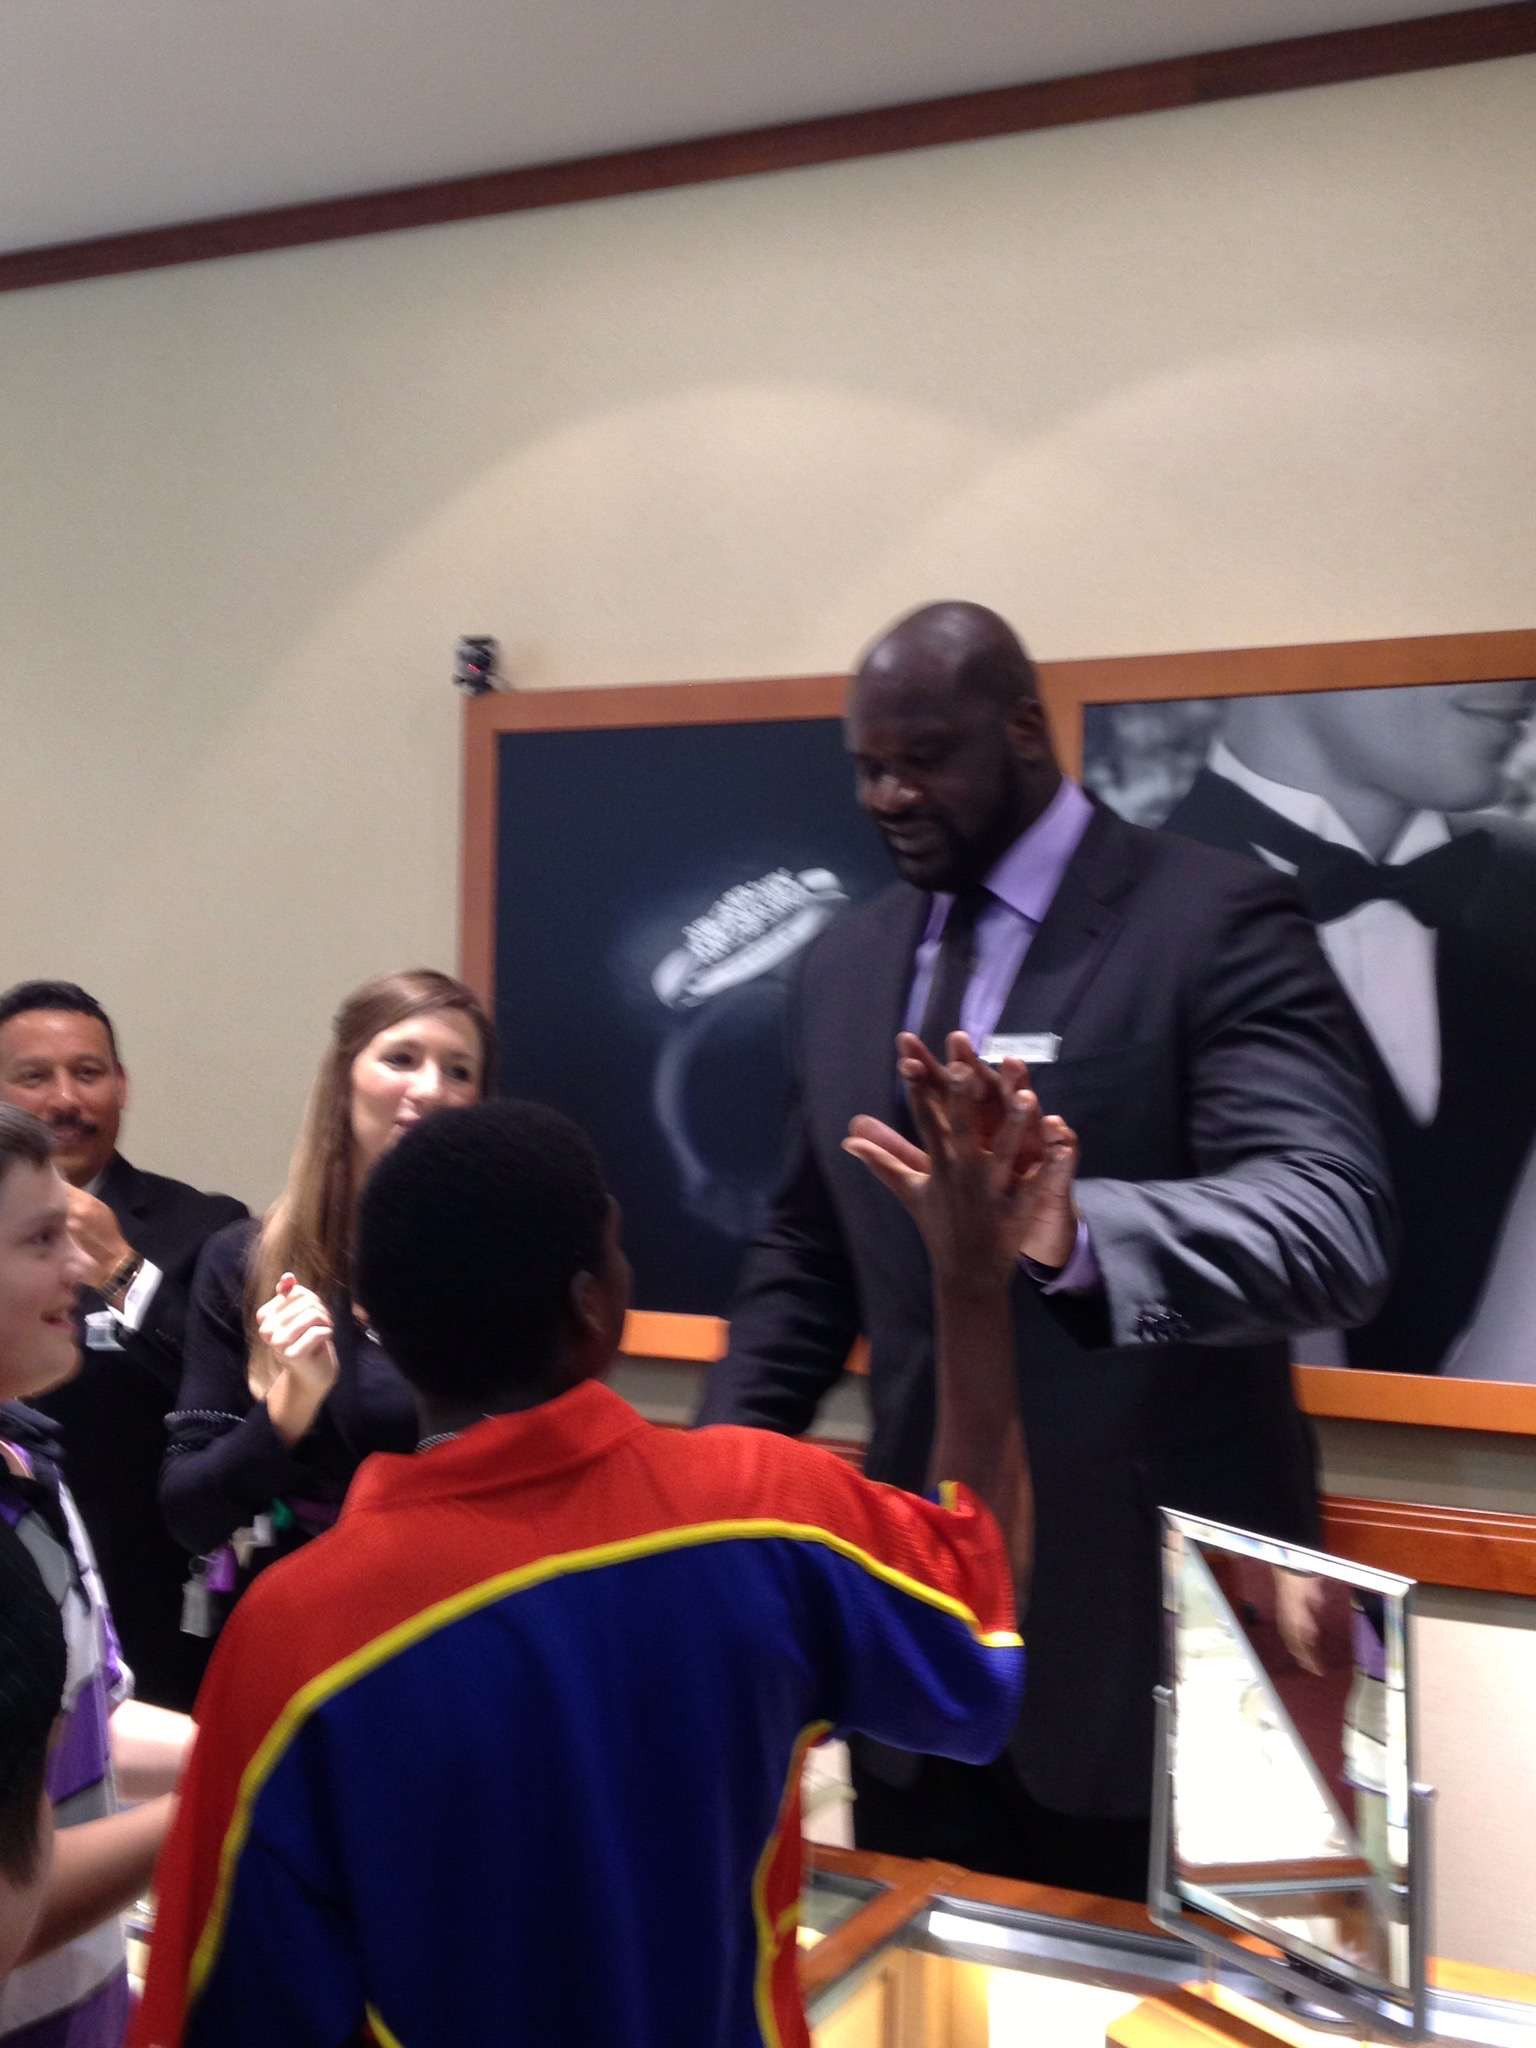 - That one time Shaquille O'Neal was in the building.